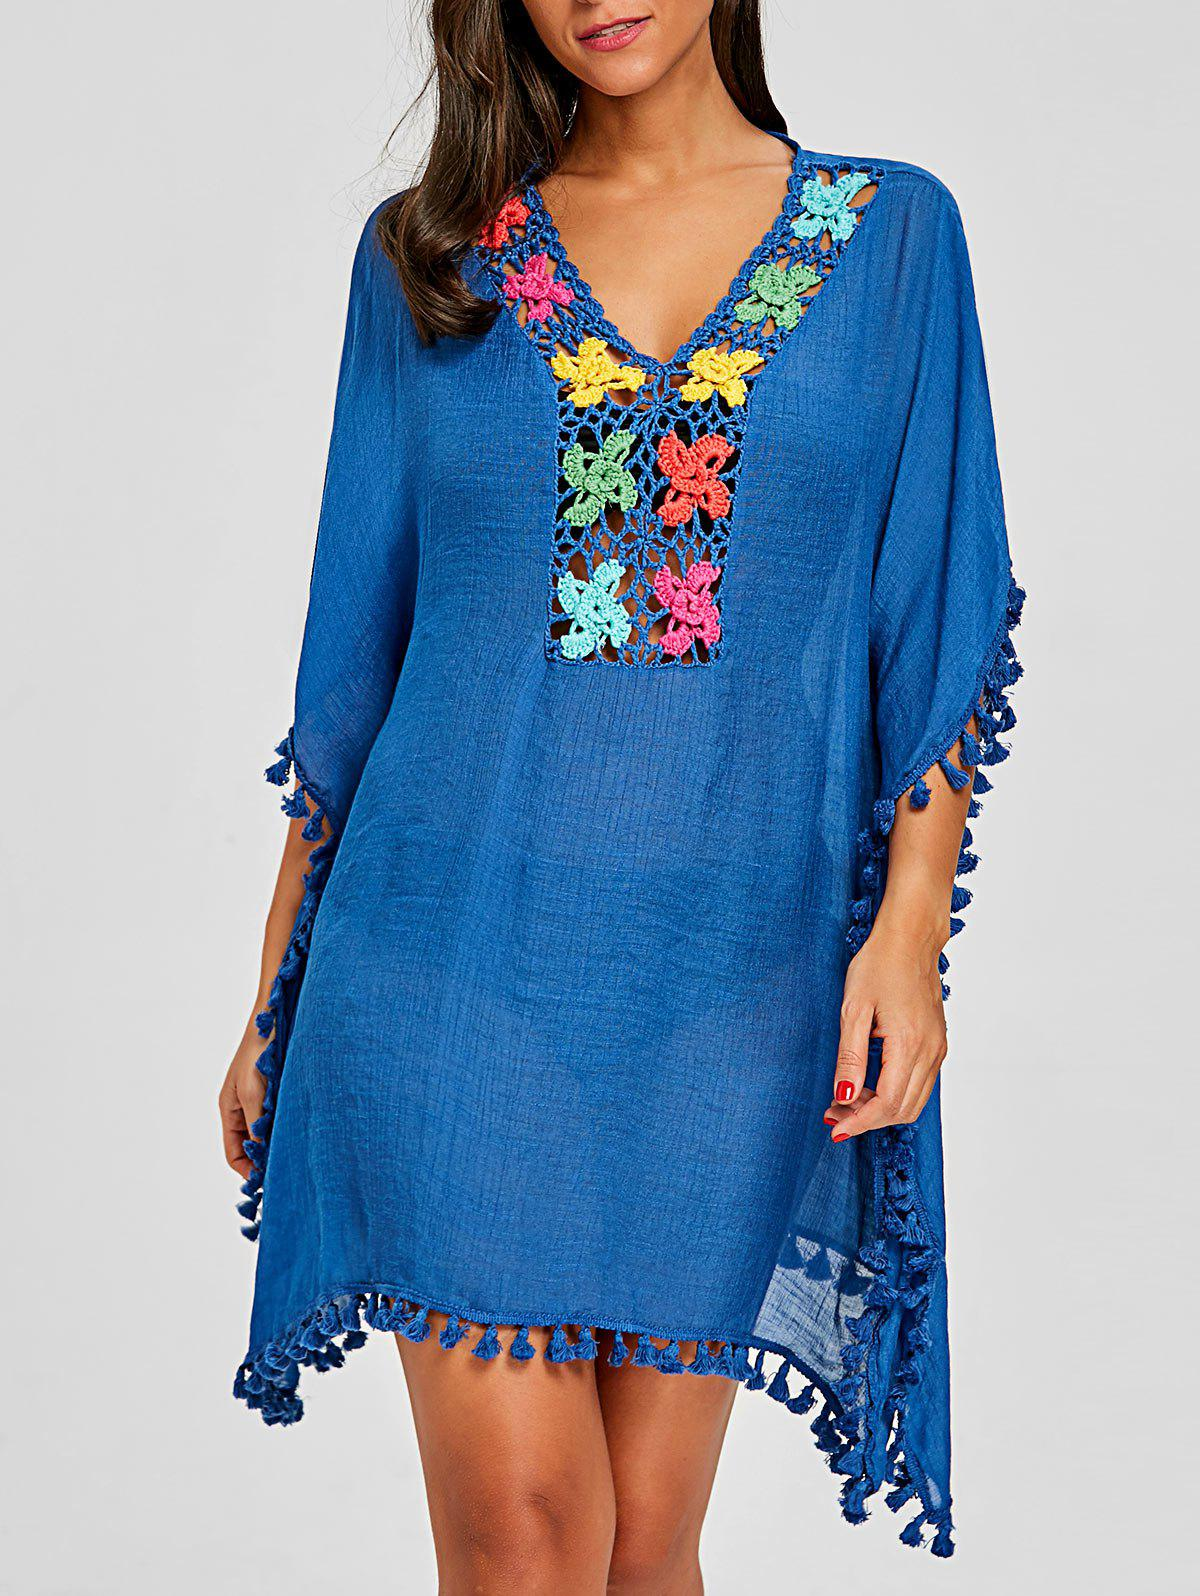 Tassel Trim Crochet Knit Cover Up - BLUE ONE SIZE